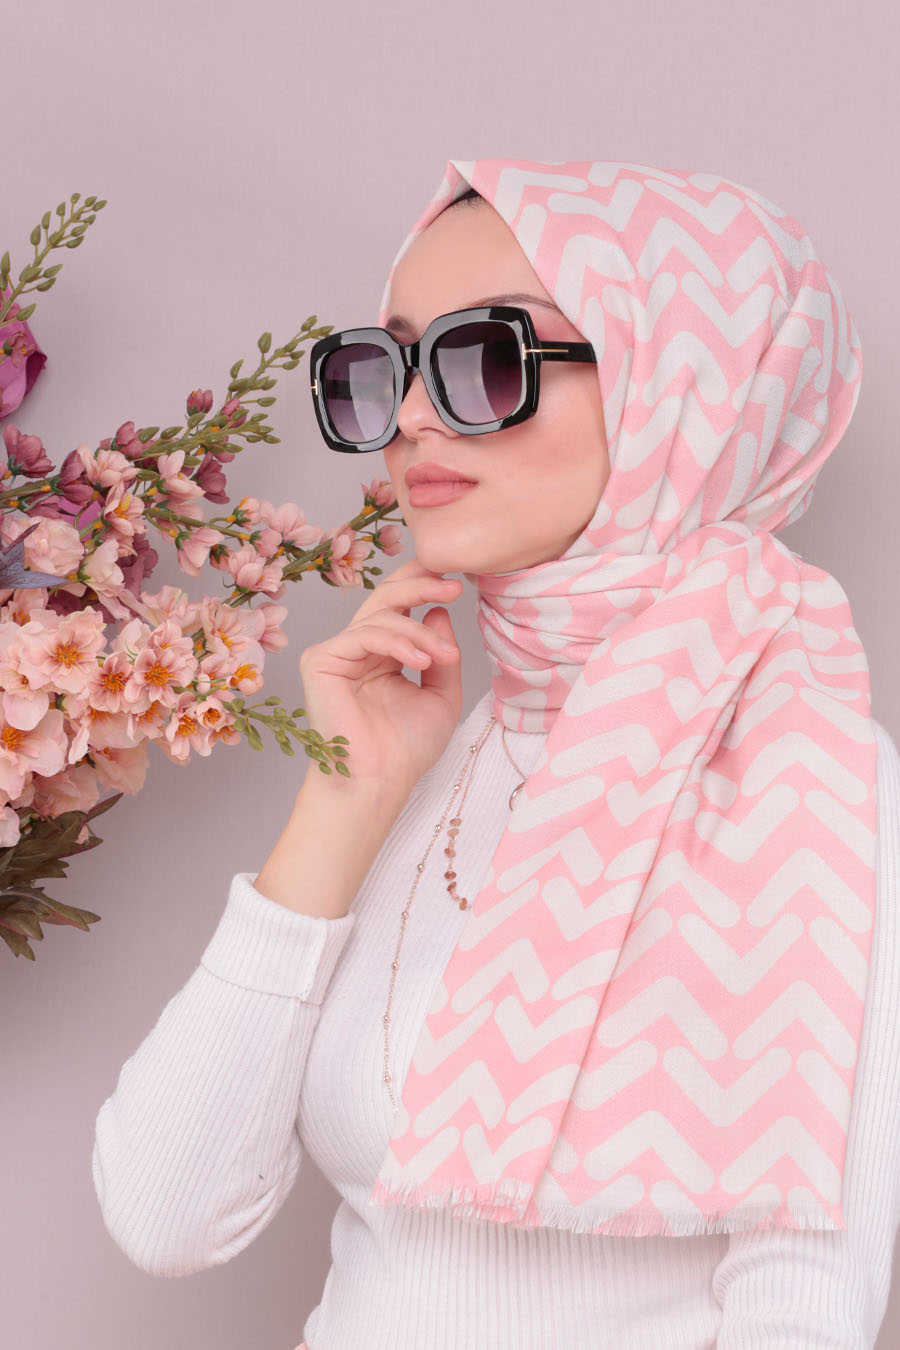 Shawl - Neva Style Powder Pink Shawl 7488PD